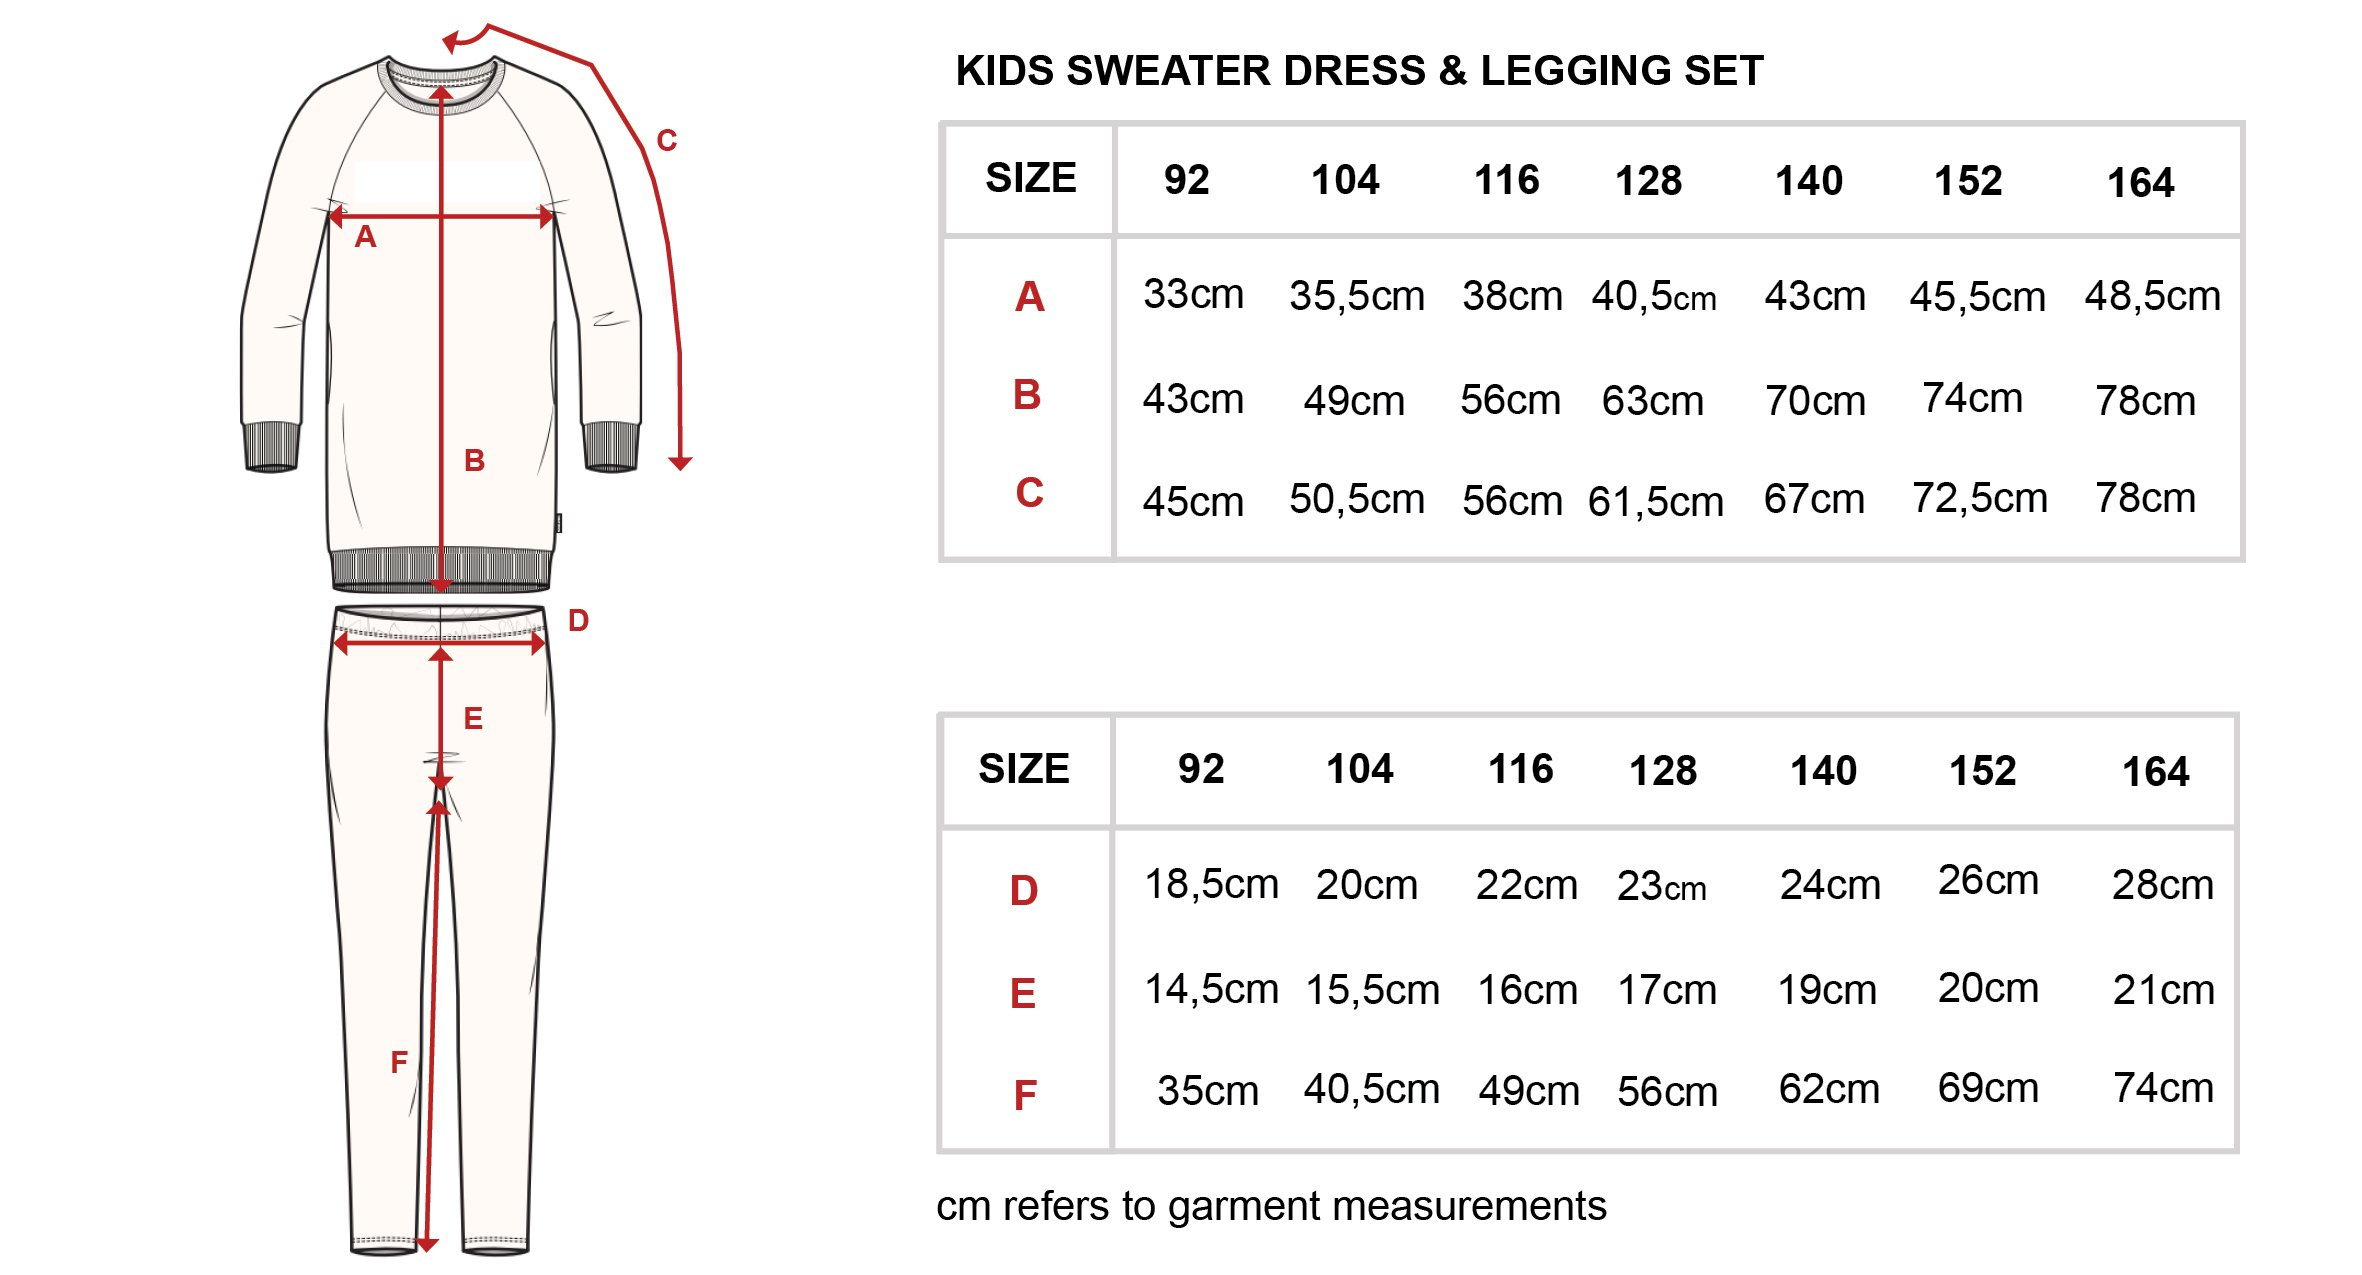 FW20-Kids-Sweater-Dress-Legging-Set